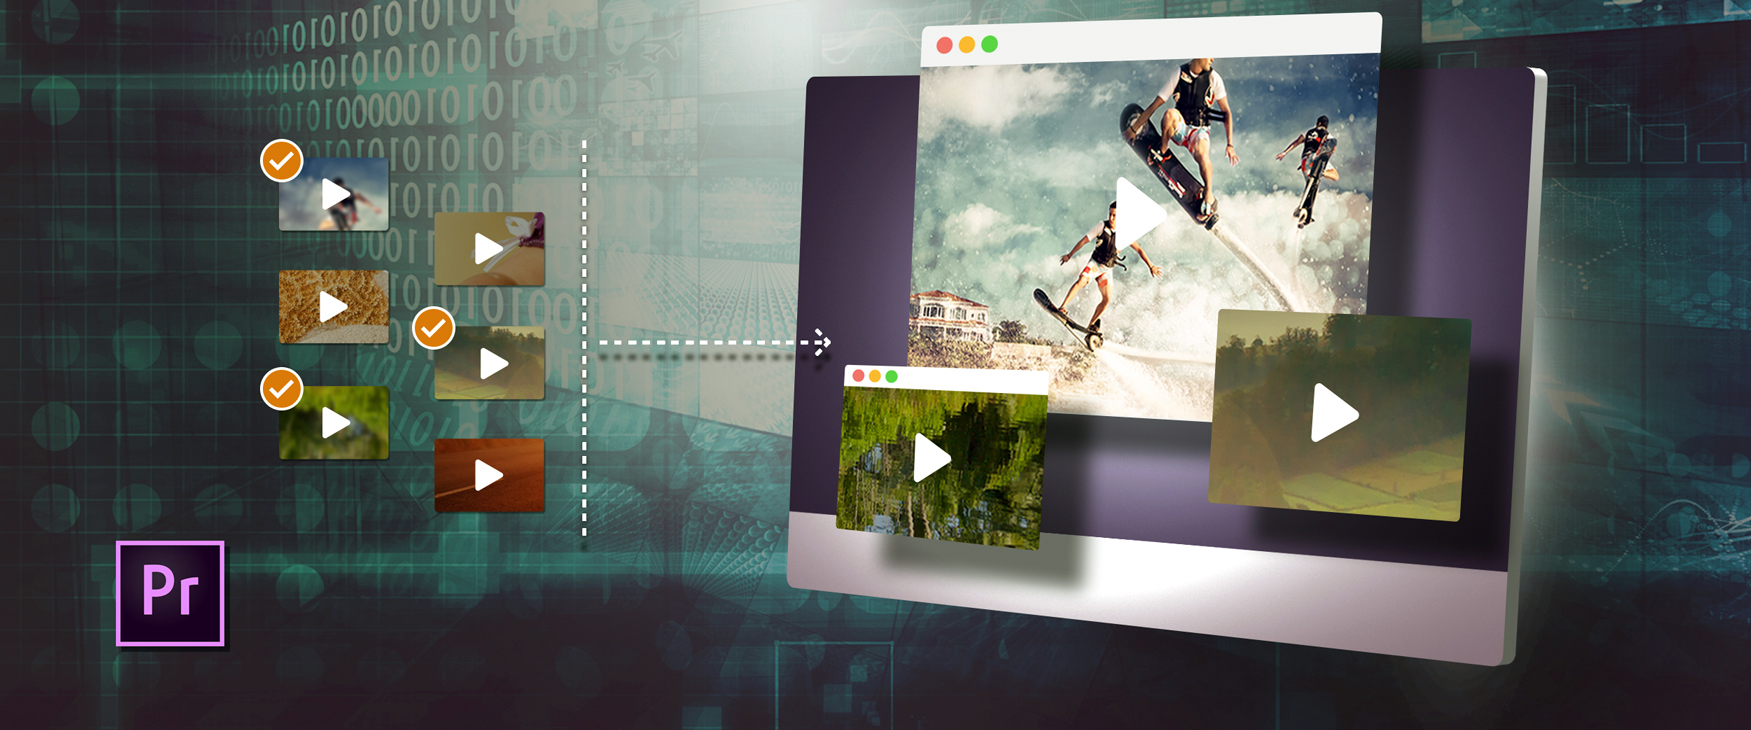 Neue Funktionen in Adobe Media Encoder